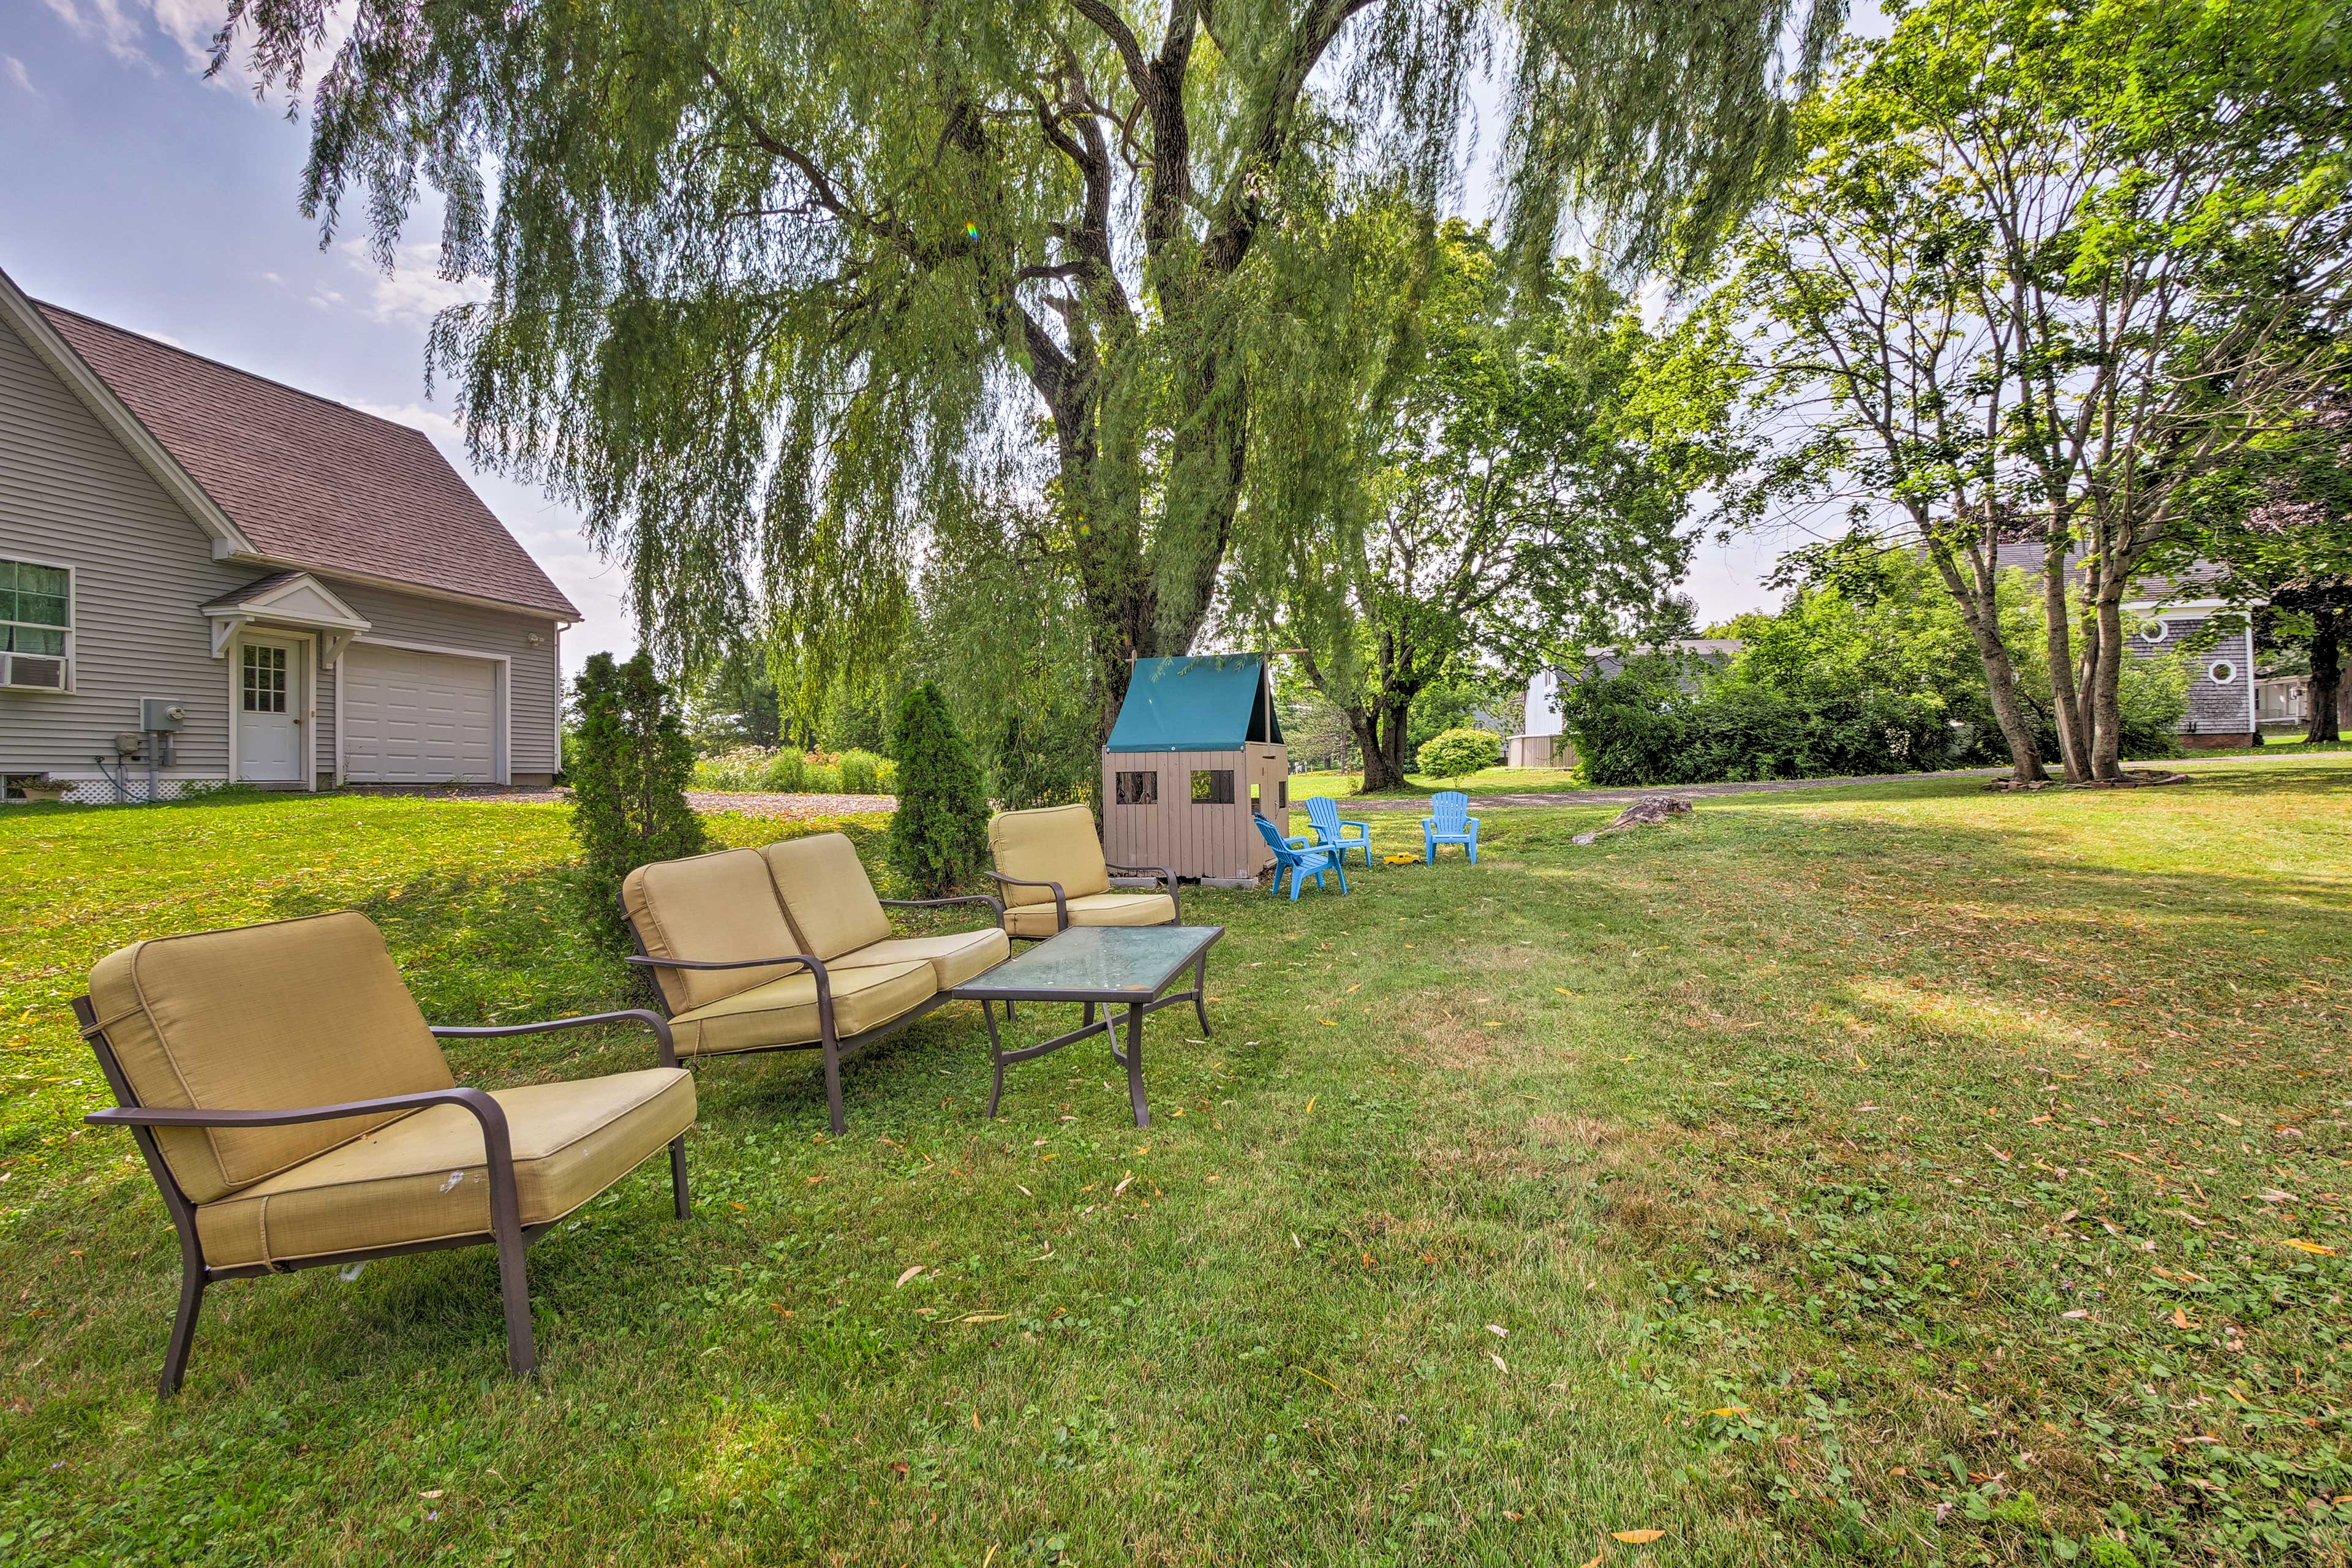 There's plenty of outdoor seating in the lawn.